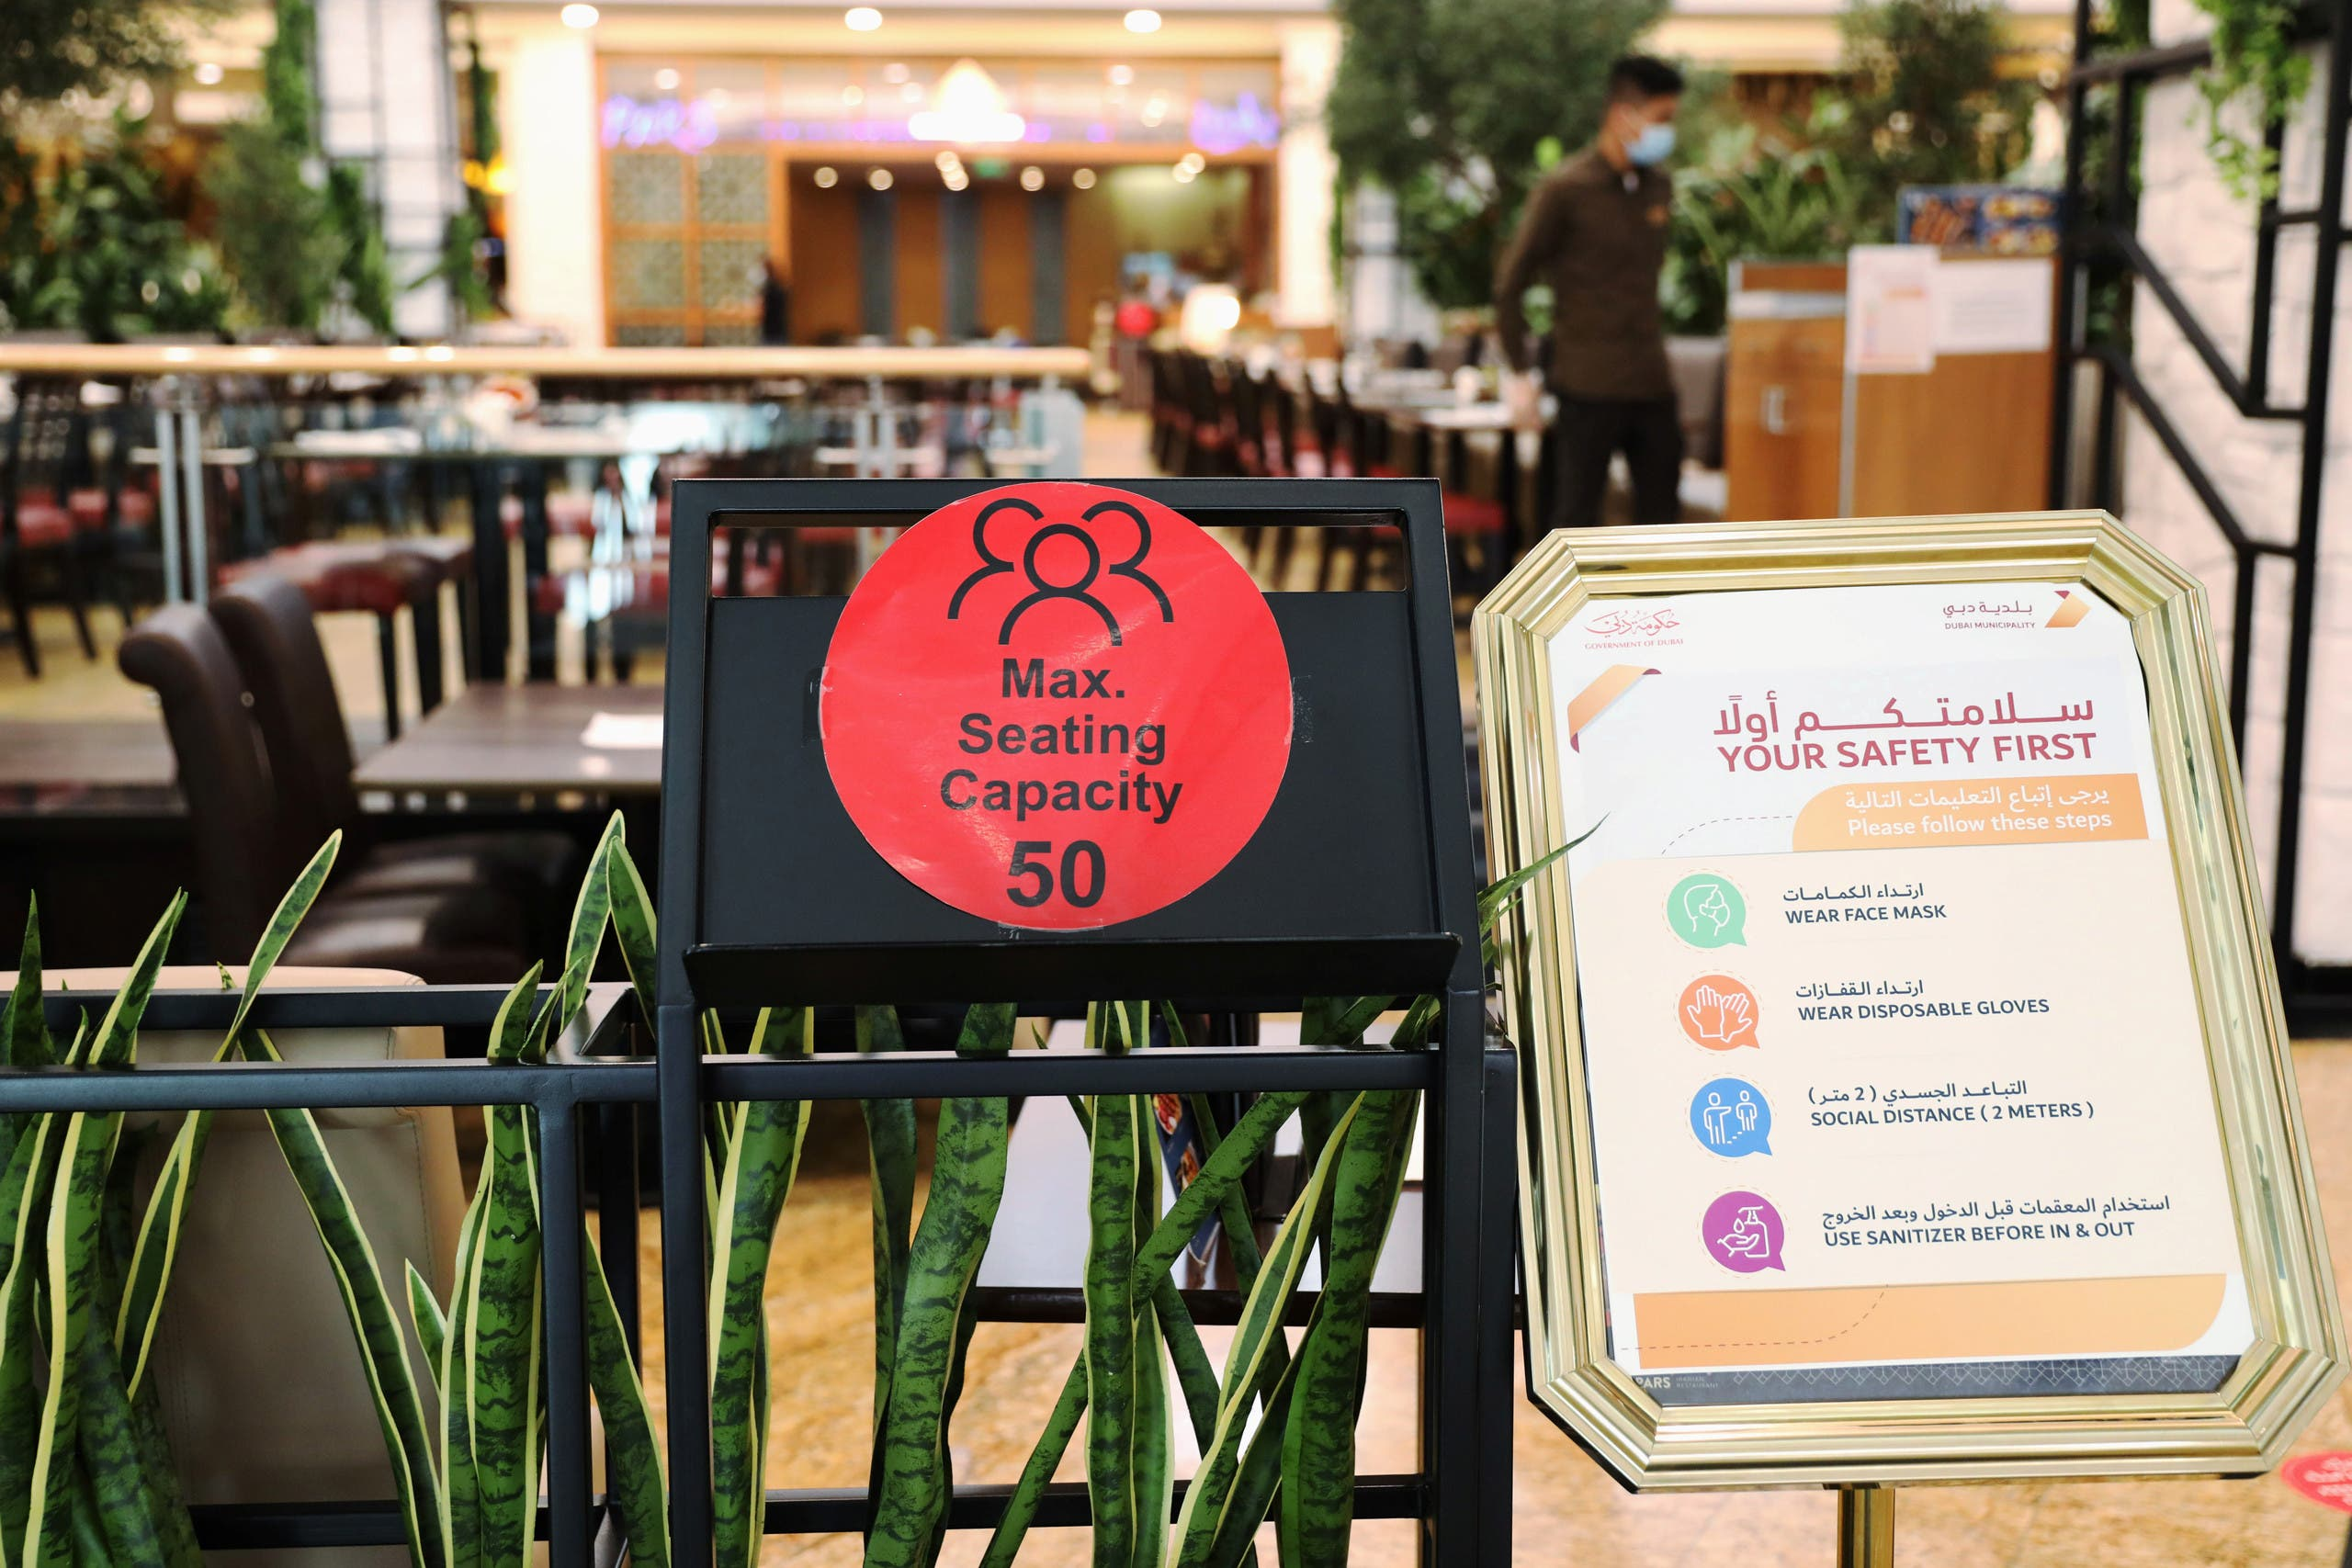 A safety sign is seen at the entrance of a restaurant in Mall of the Emirates in Dubai. (File photo: Reuters)